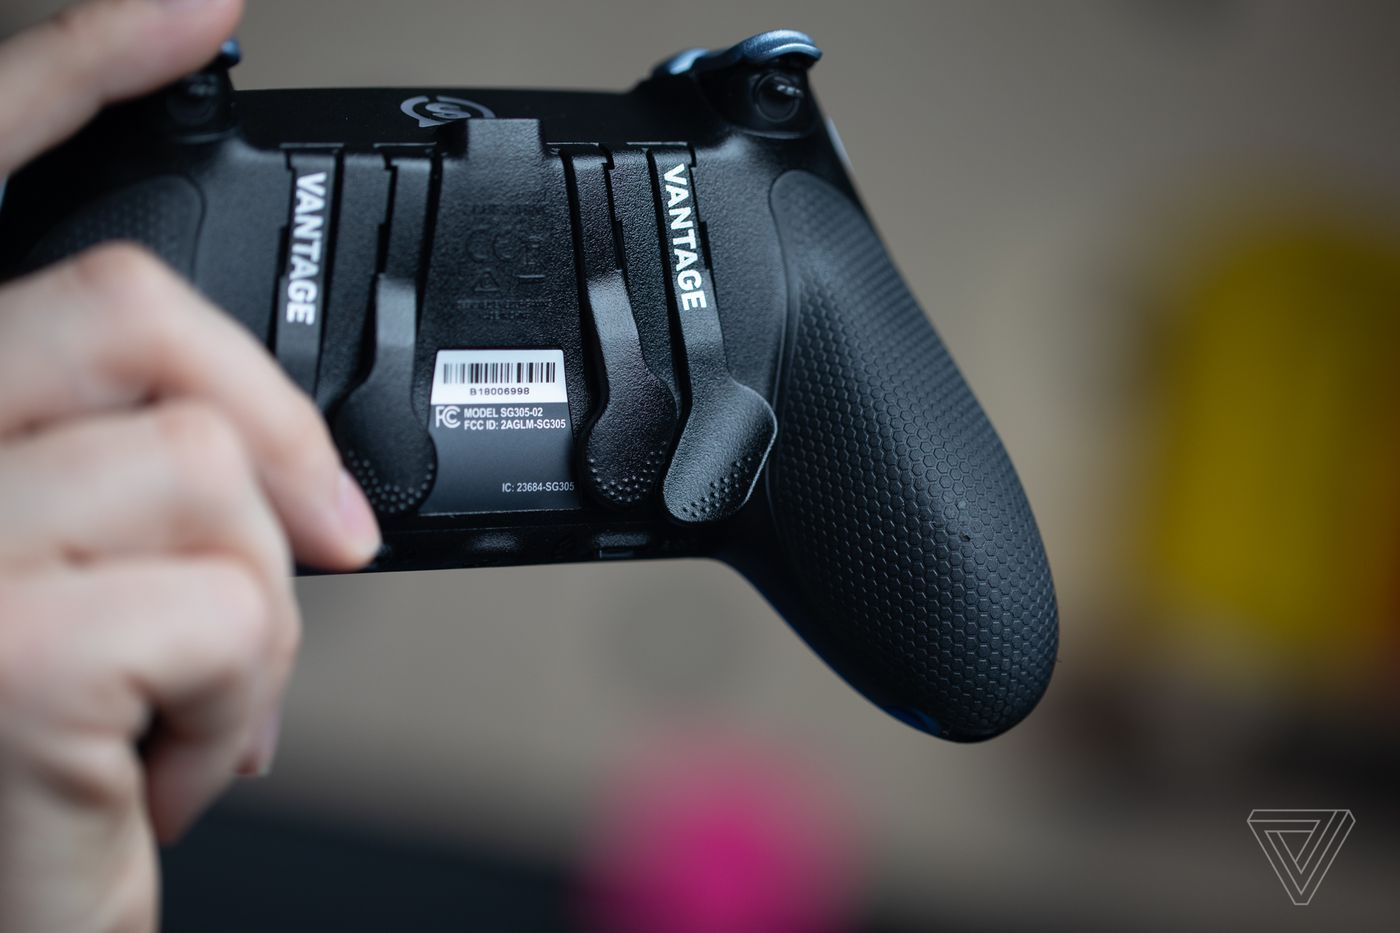 Scuf Vantage review: a complete reimagining of the PS4